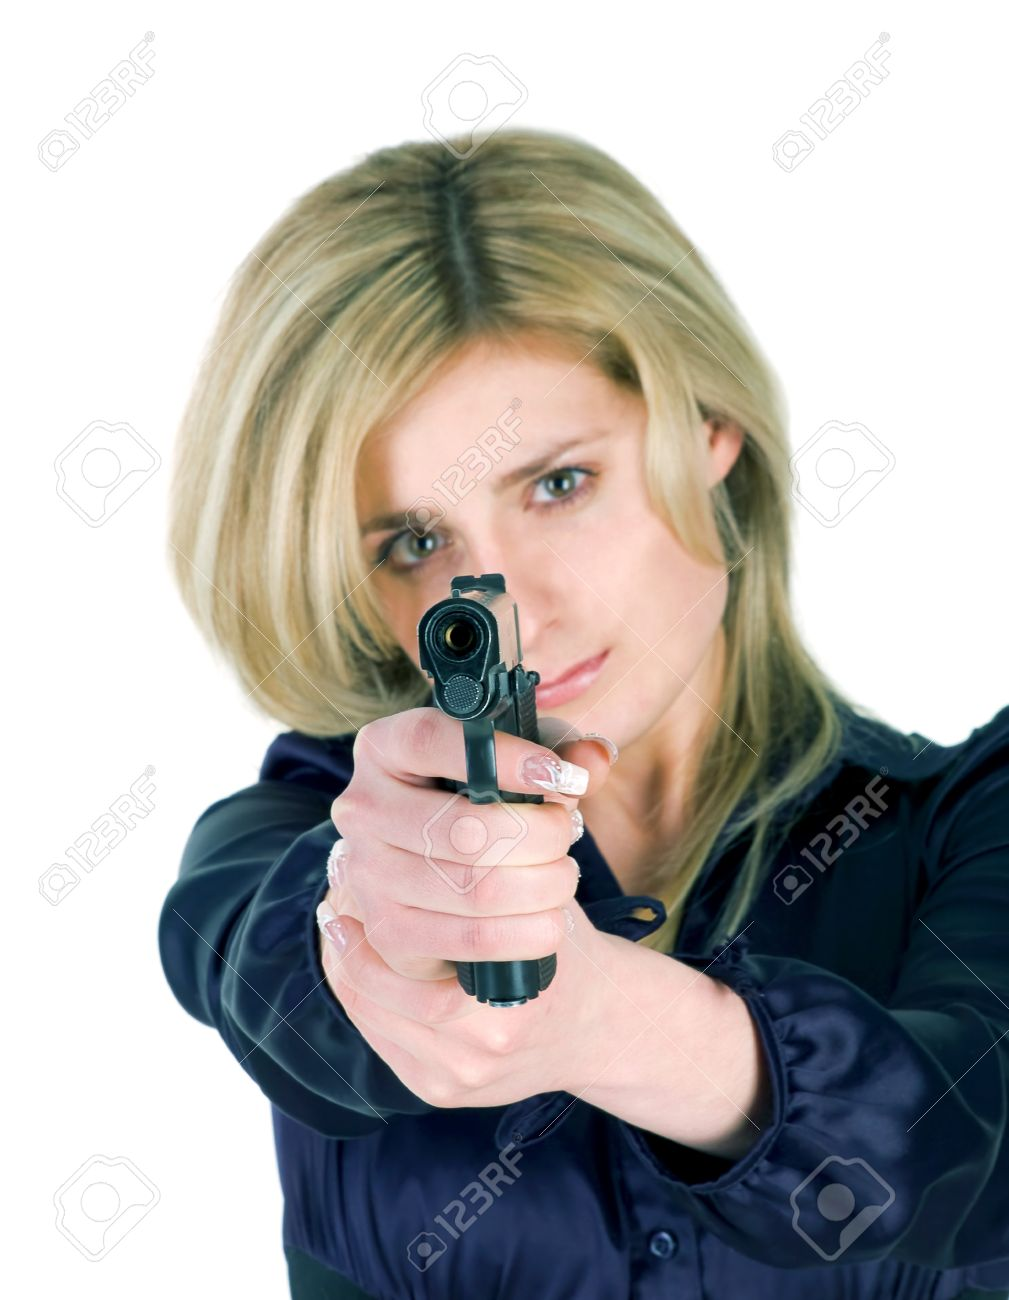 Beautiful blond girl aiming a gun at camera Stock Photo - 4529300